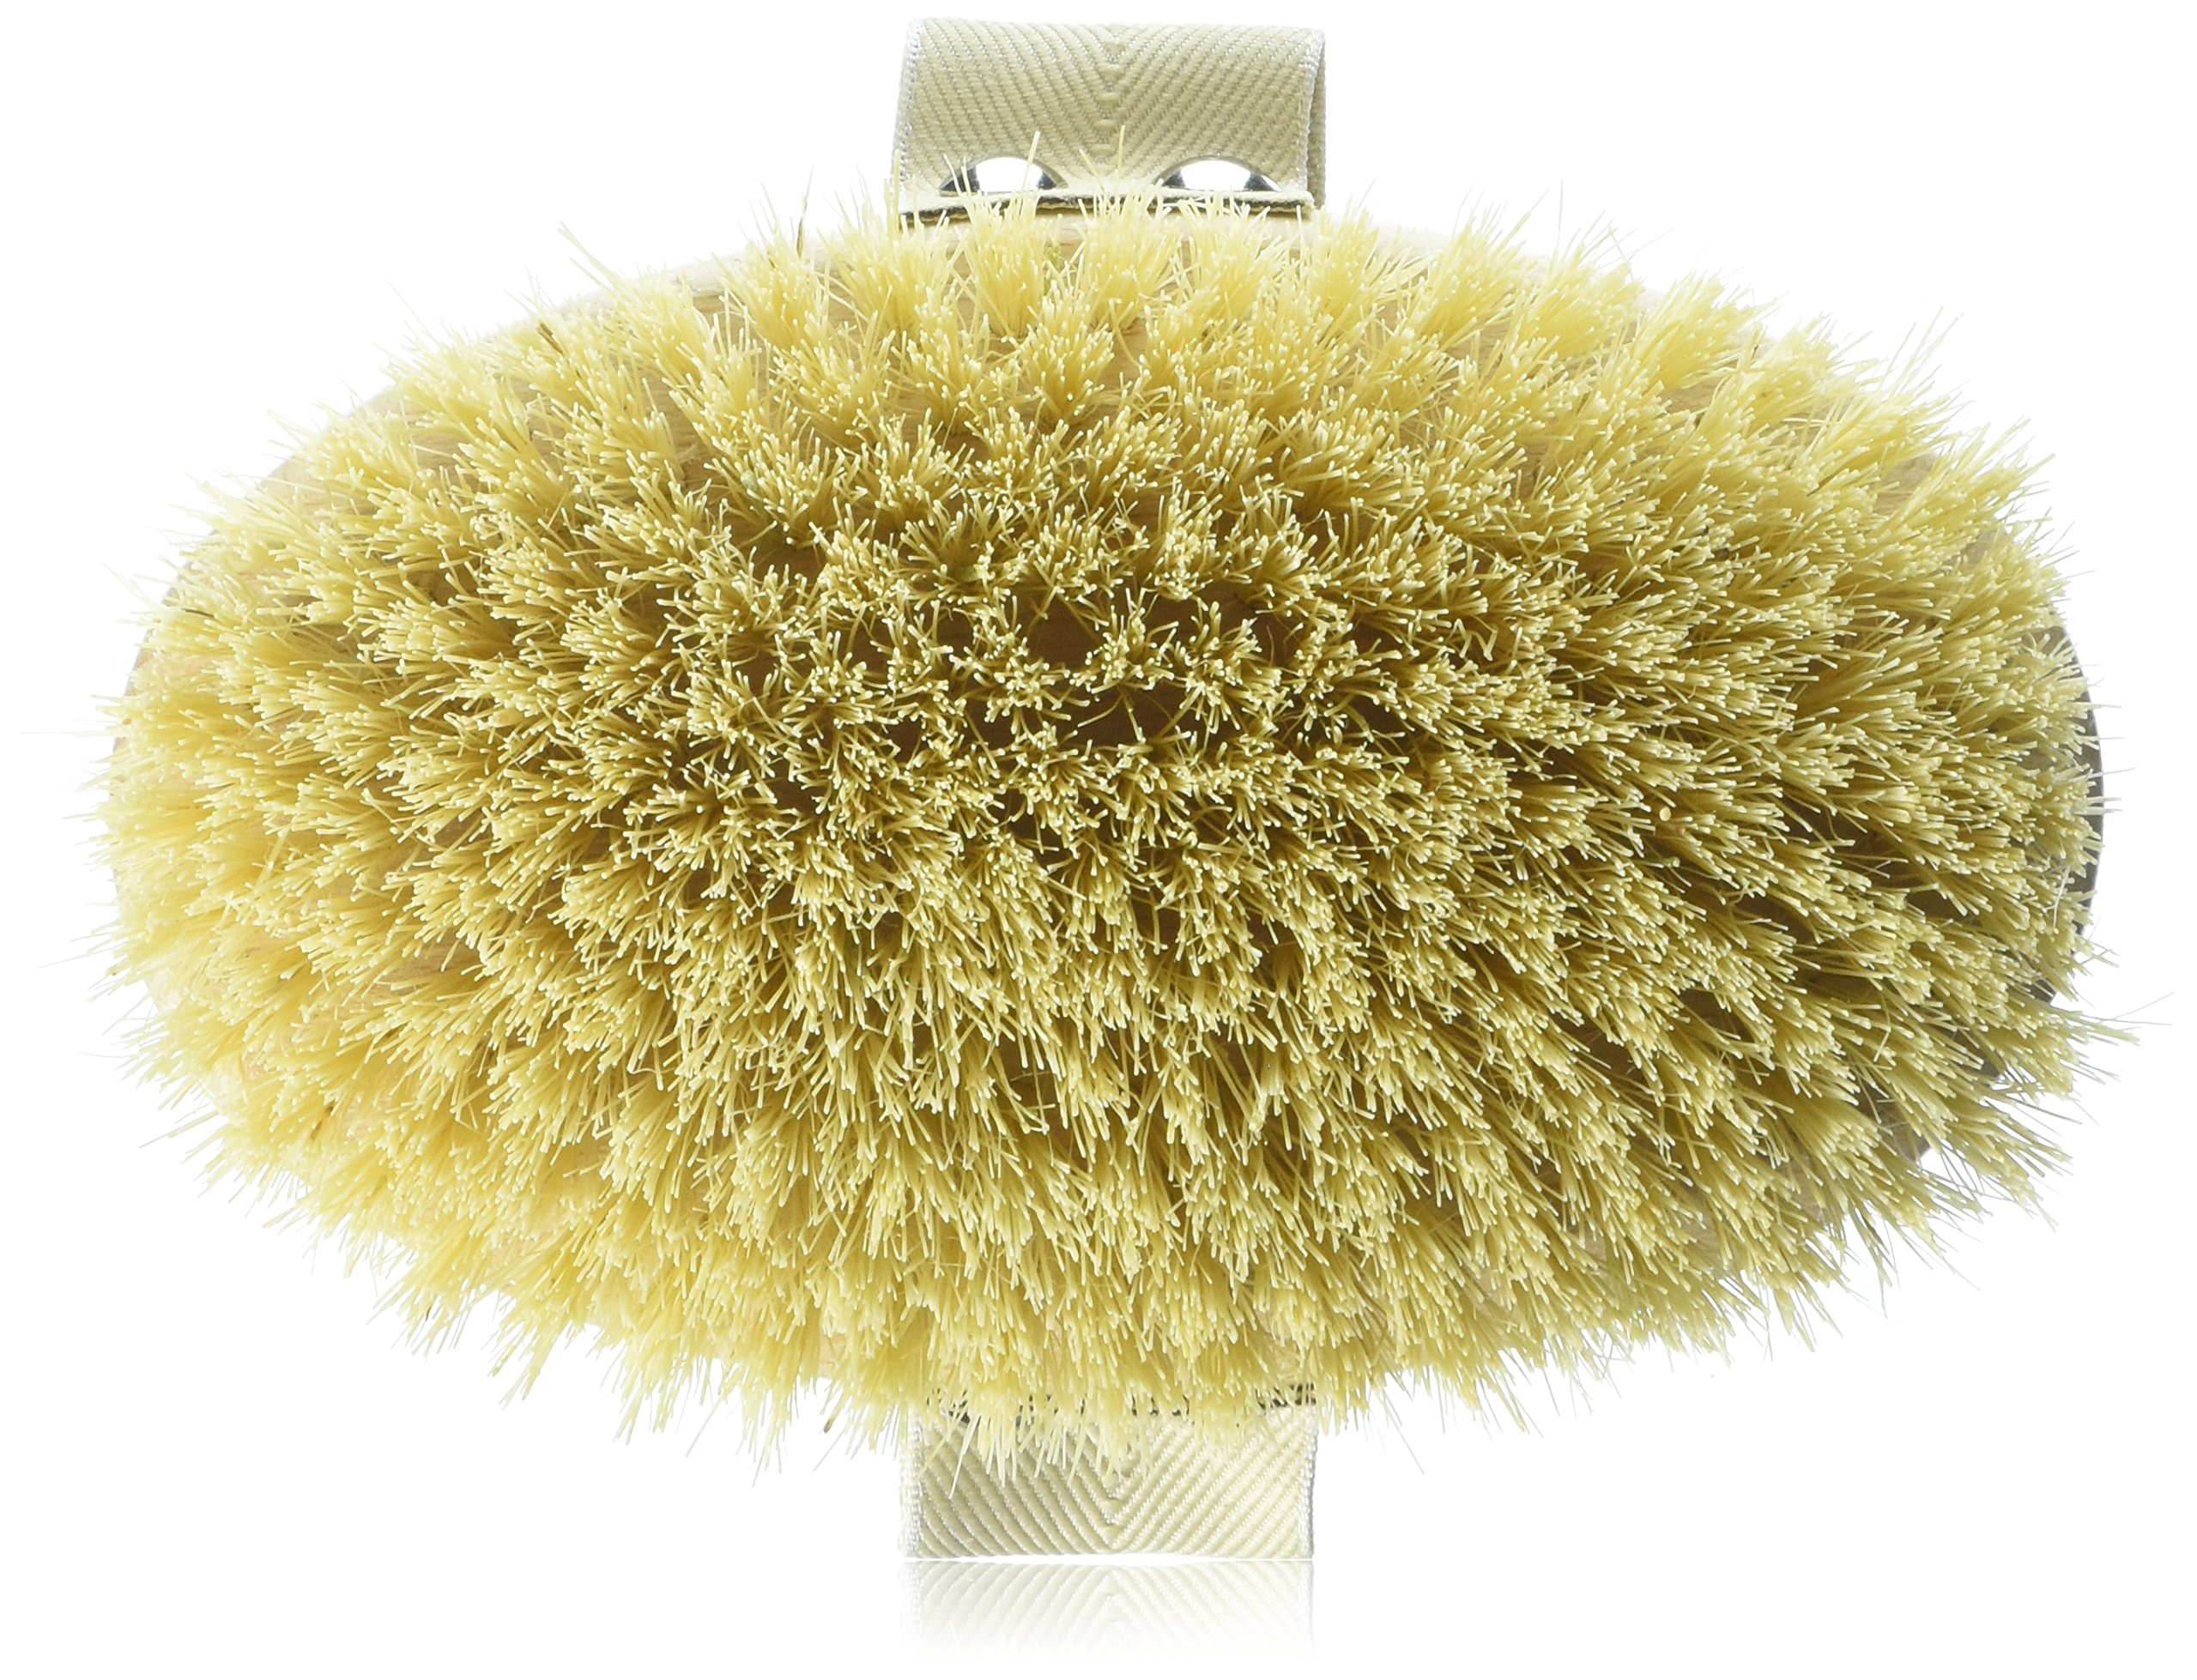 Hydrea Professional Dry Skin Body Brush with Cactus Bristles (Firm/Extra Firm Bristles) by Hydrea London